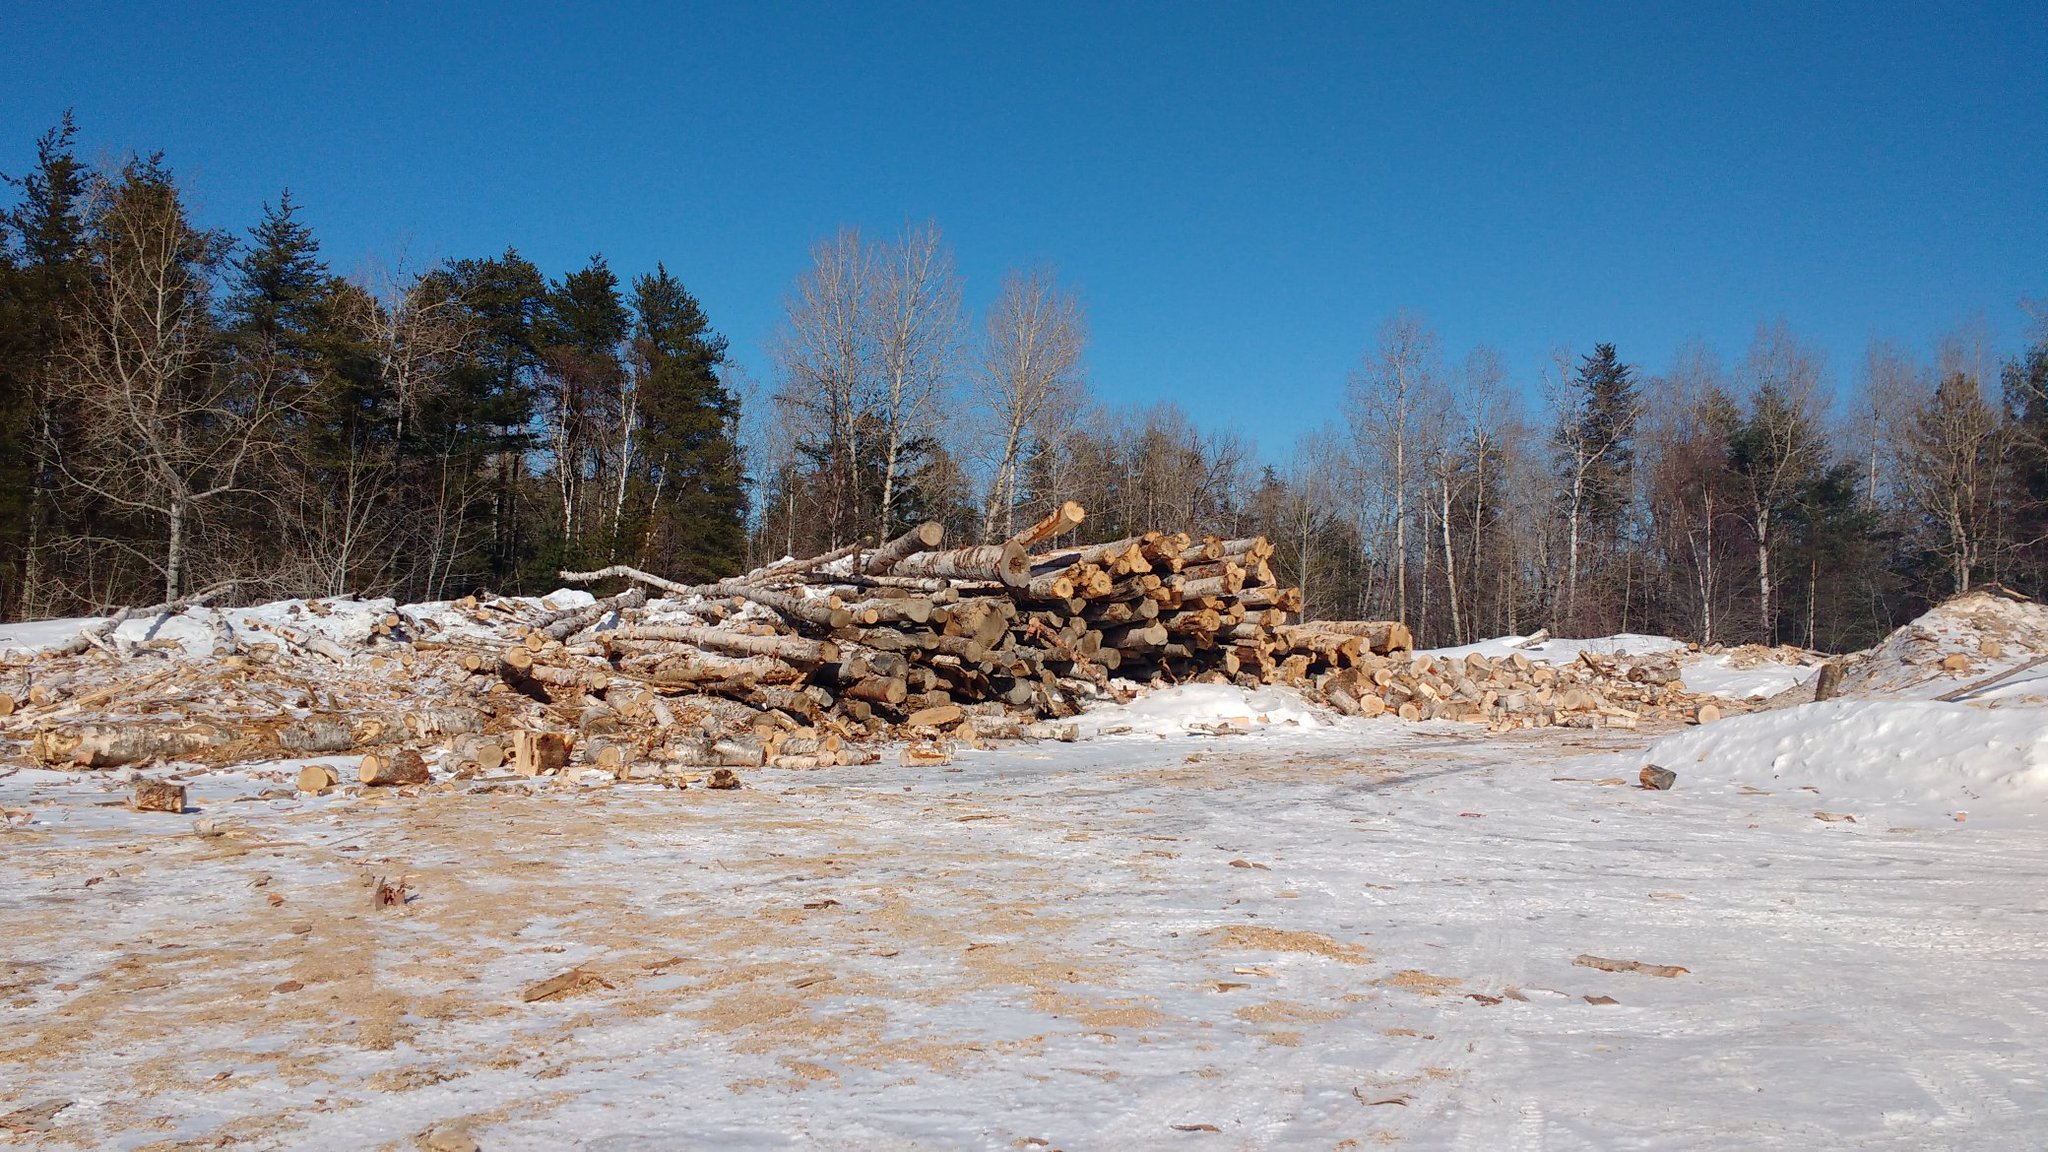 Quebec offers a meagre pile of wood for heating though, logged from ABL territory. This is the extent of any resource revenue sharing. https://t.co/byIA5Dk2B4